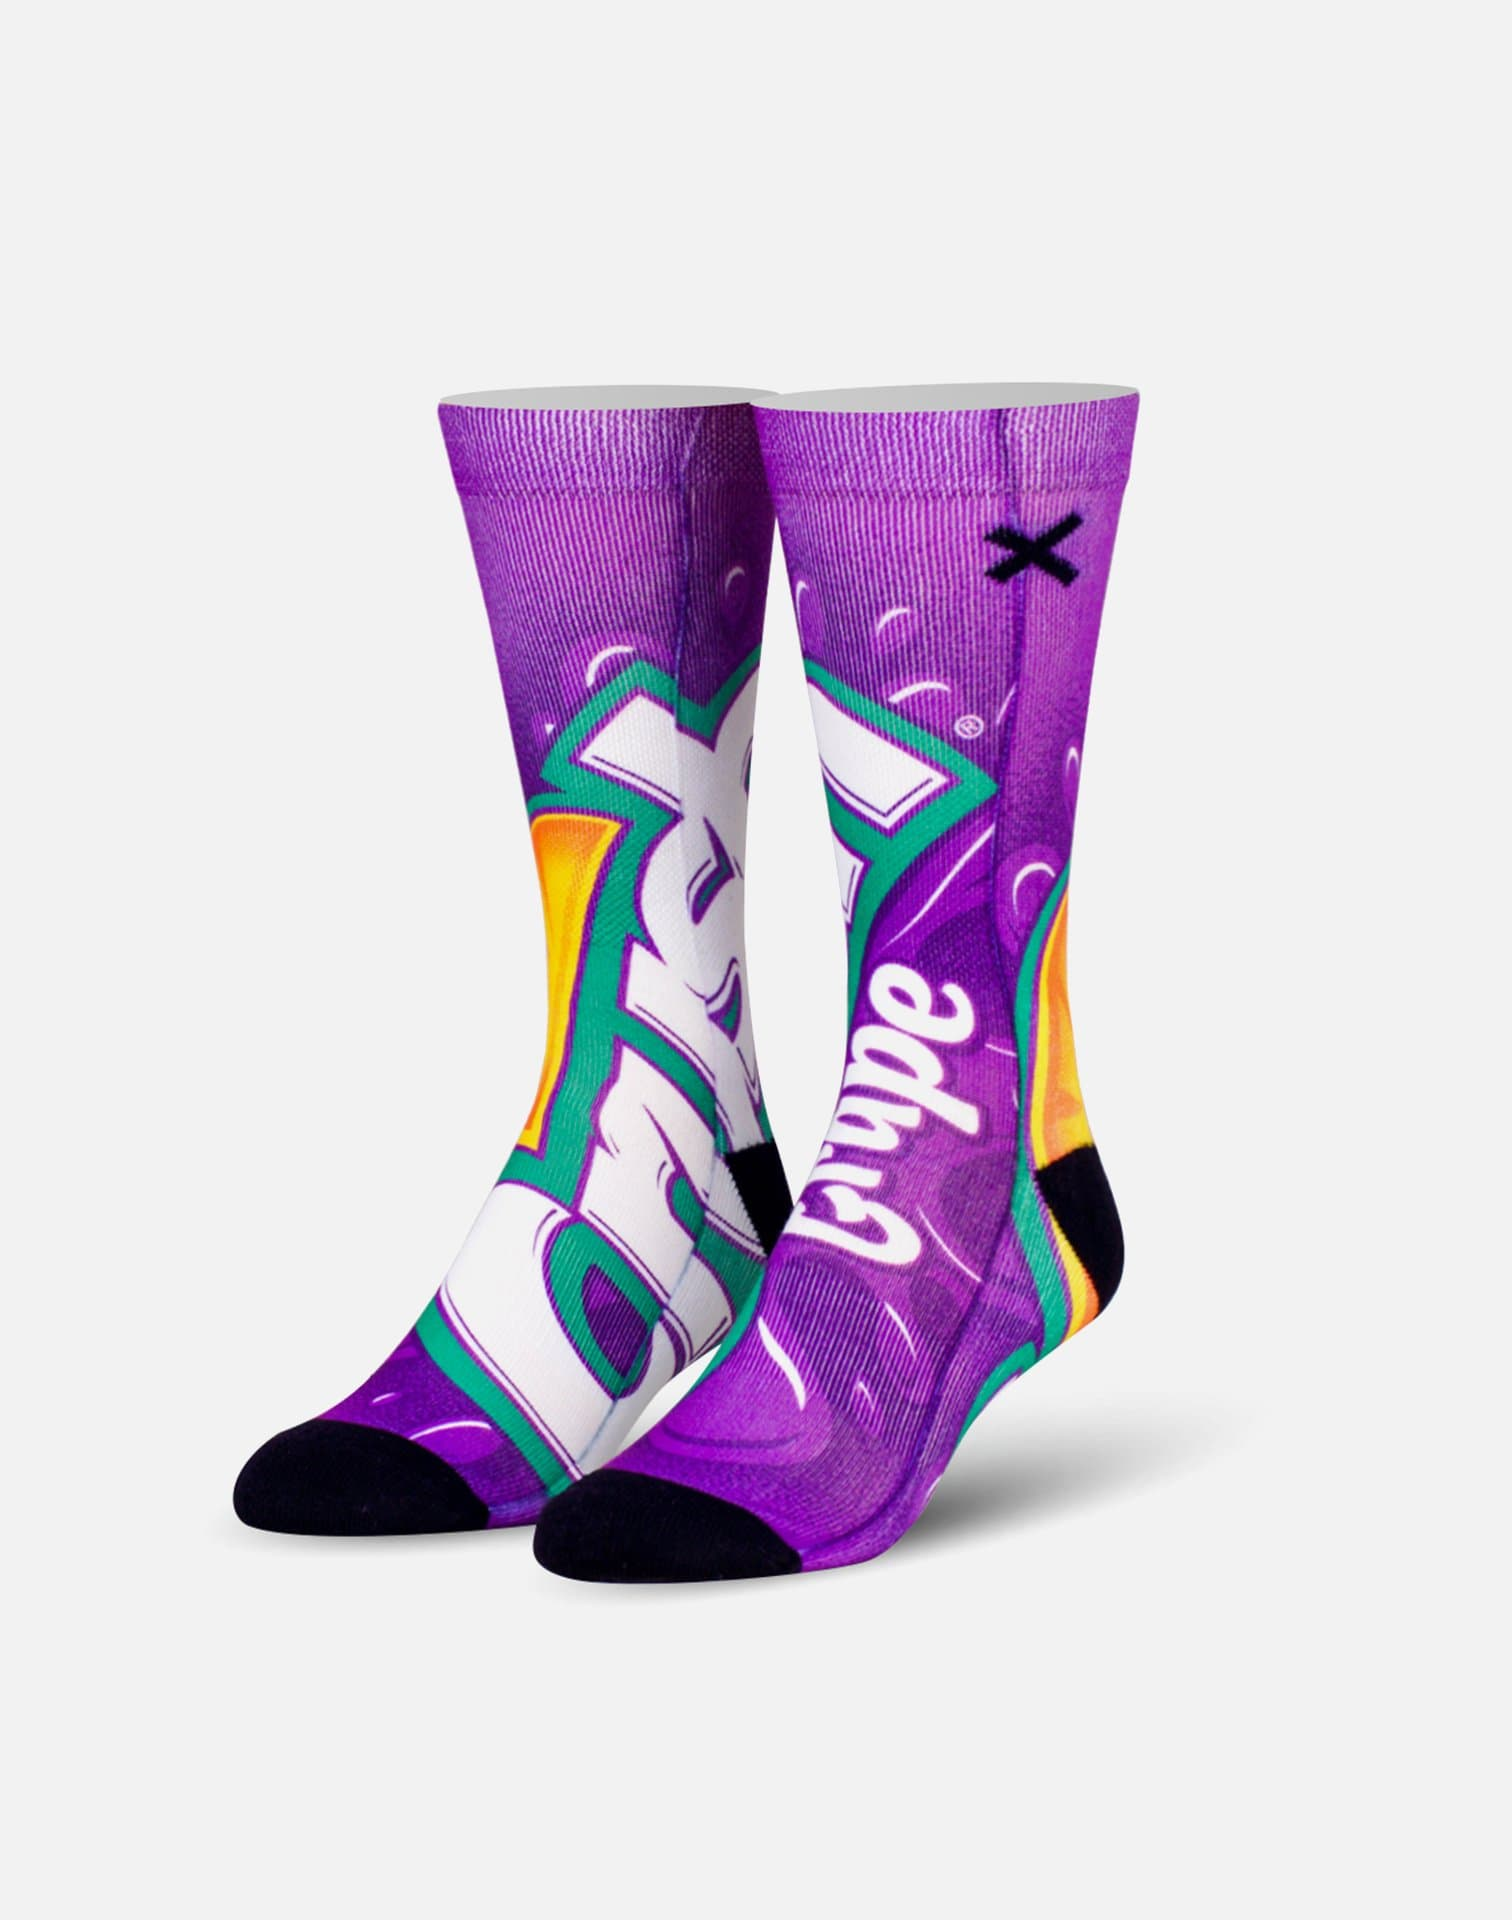 Odd Sox Grape Crush Socks